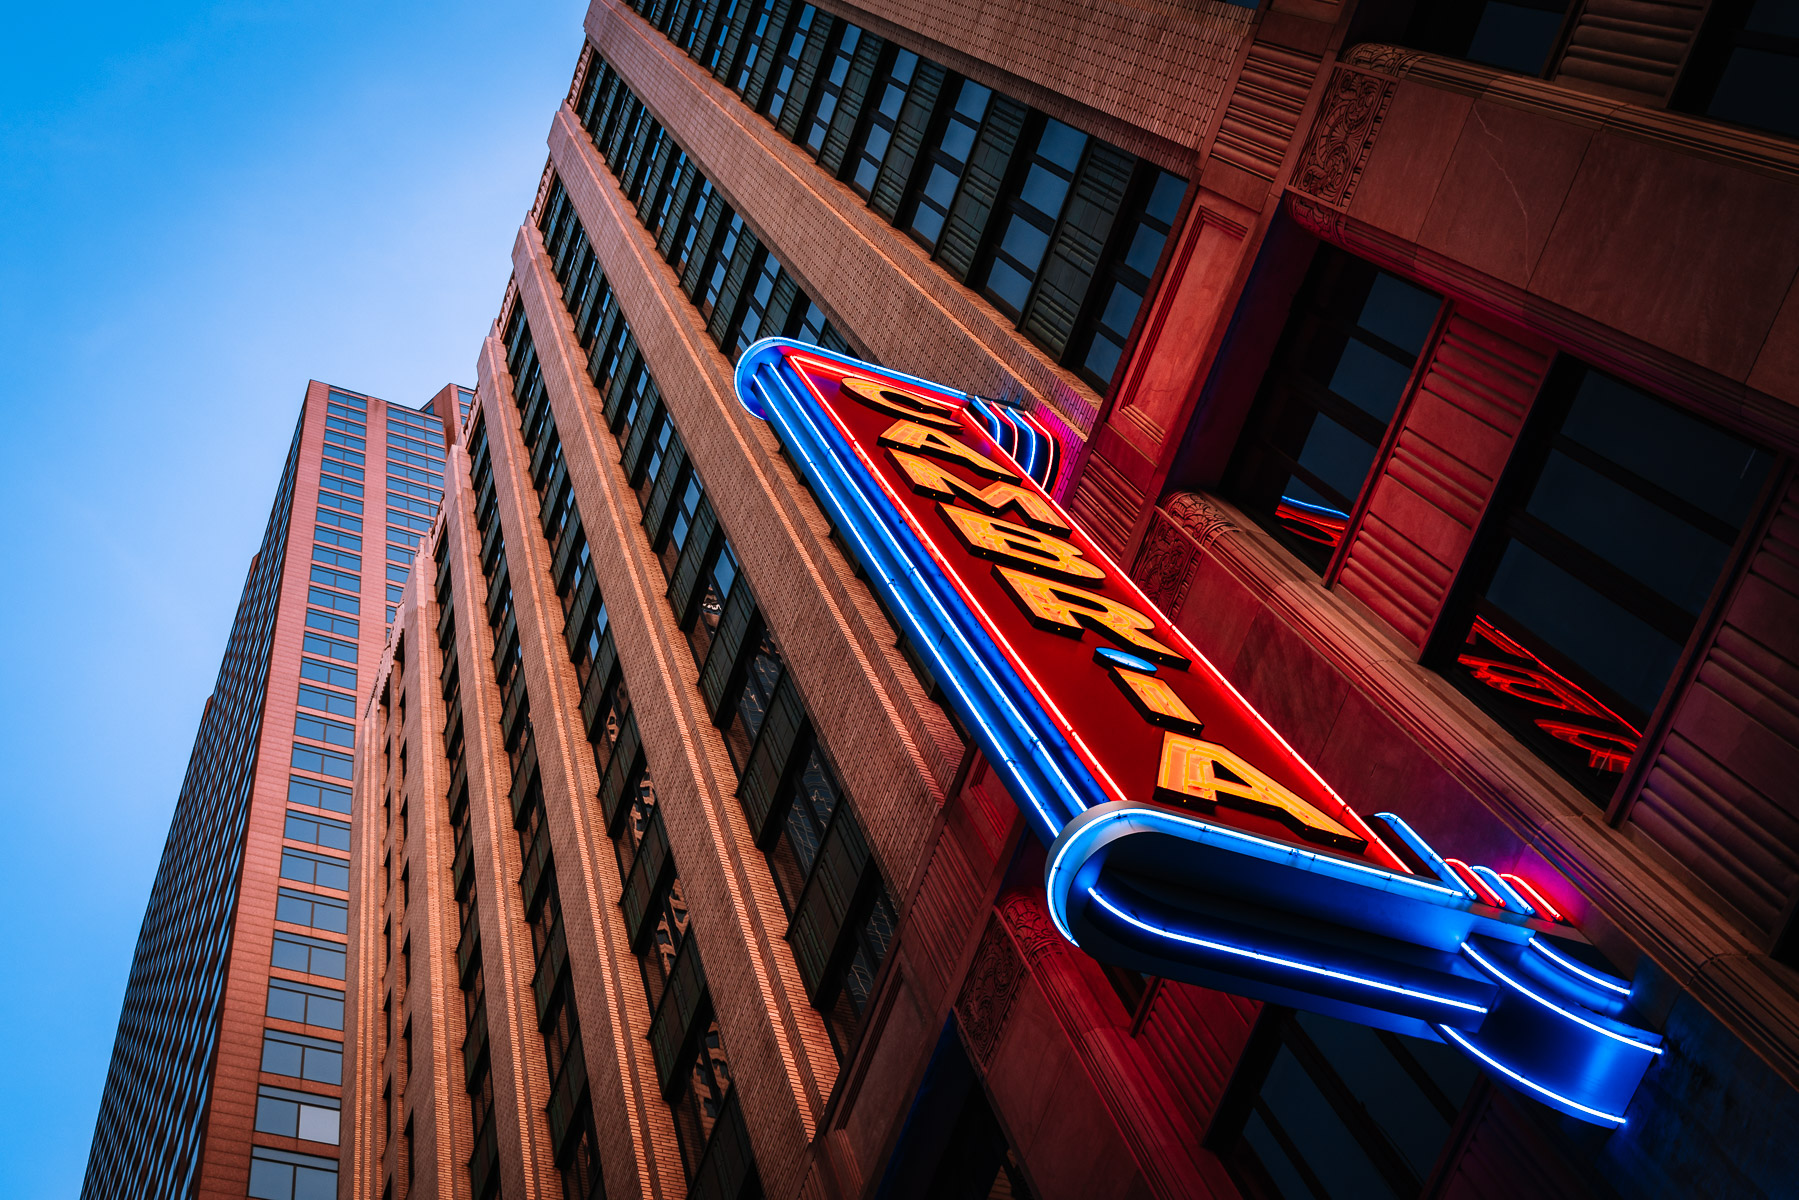 The neon sign at Downtown Dallas' Cambria Hotel.